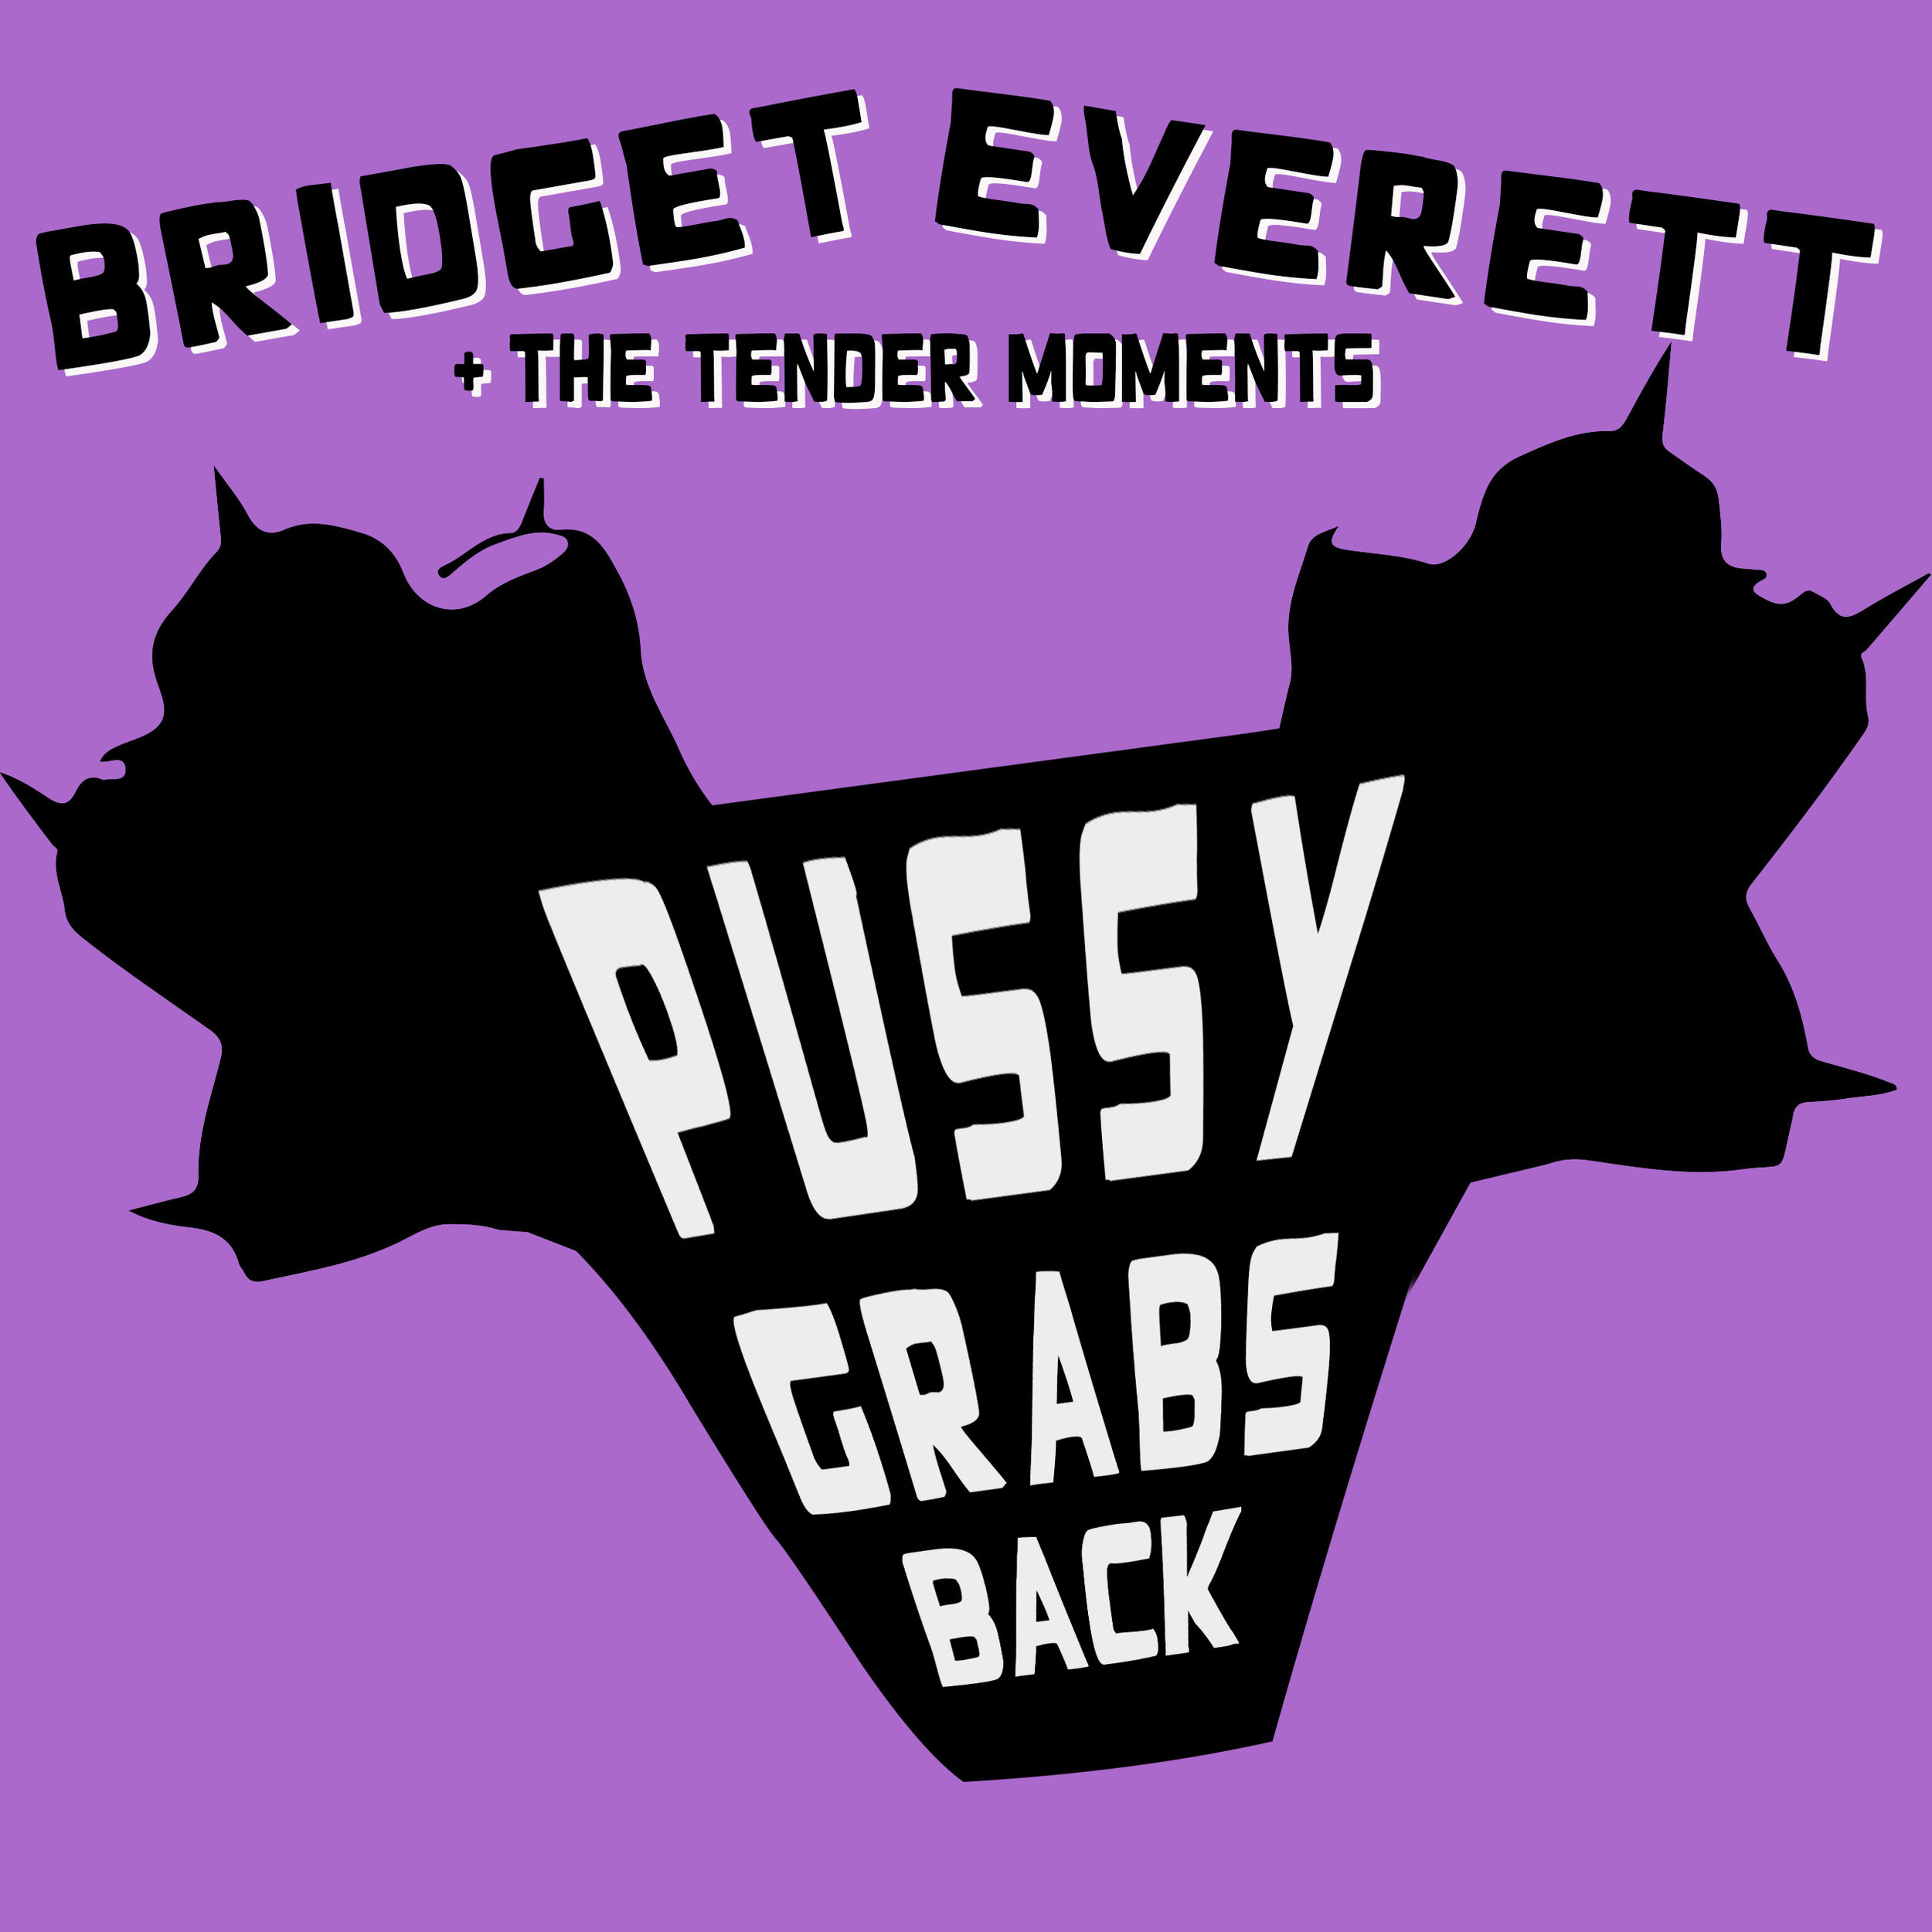 Bridget Everett and the Tender Moments - Pussy Grabs Back (Single) - Click here to purchaseClick on image to listen